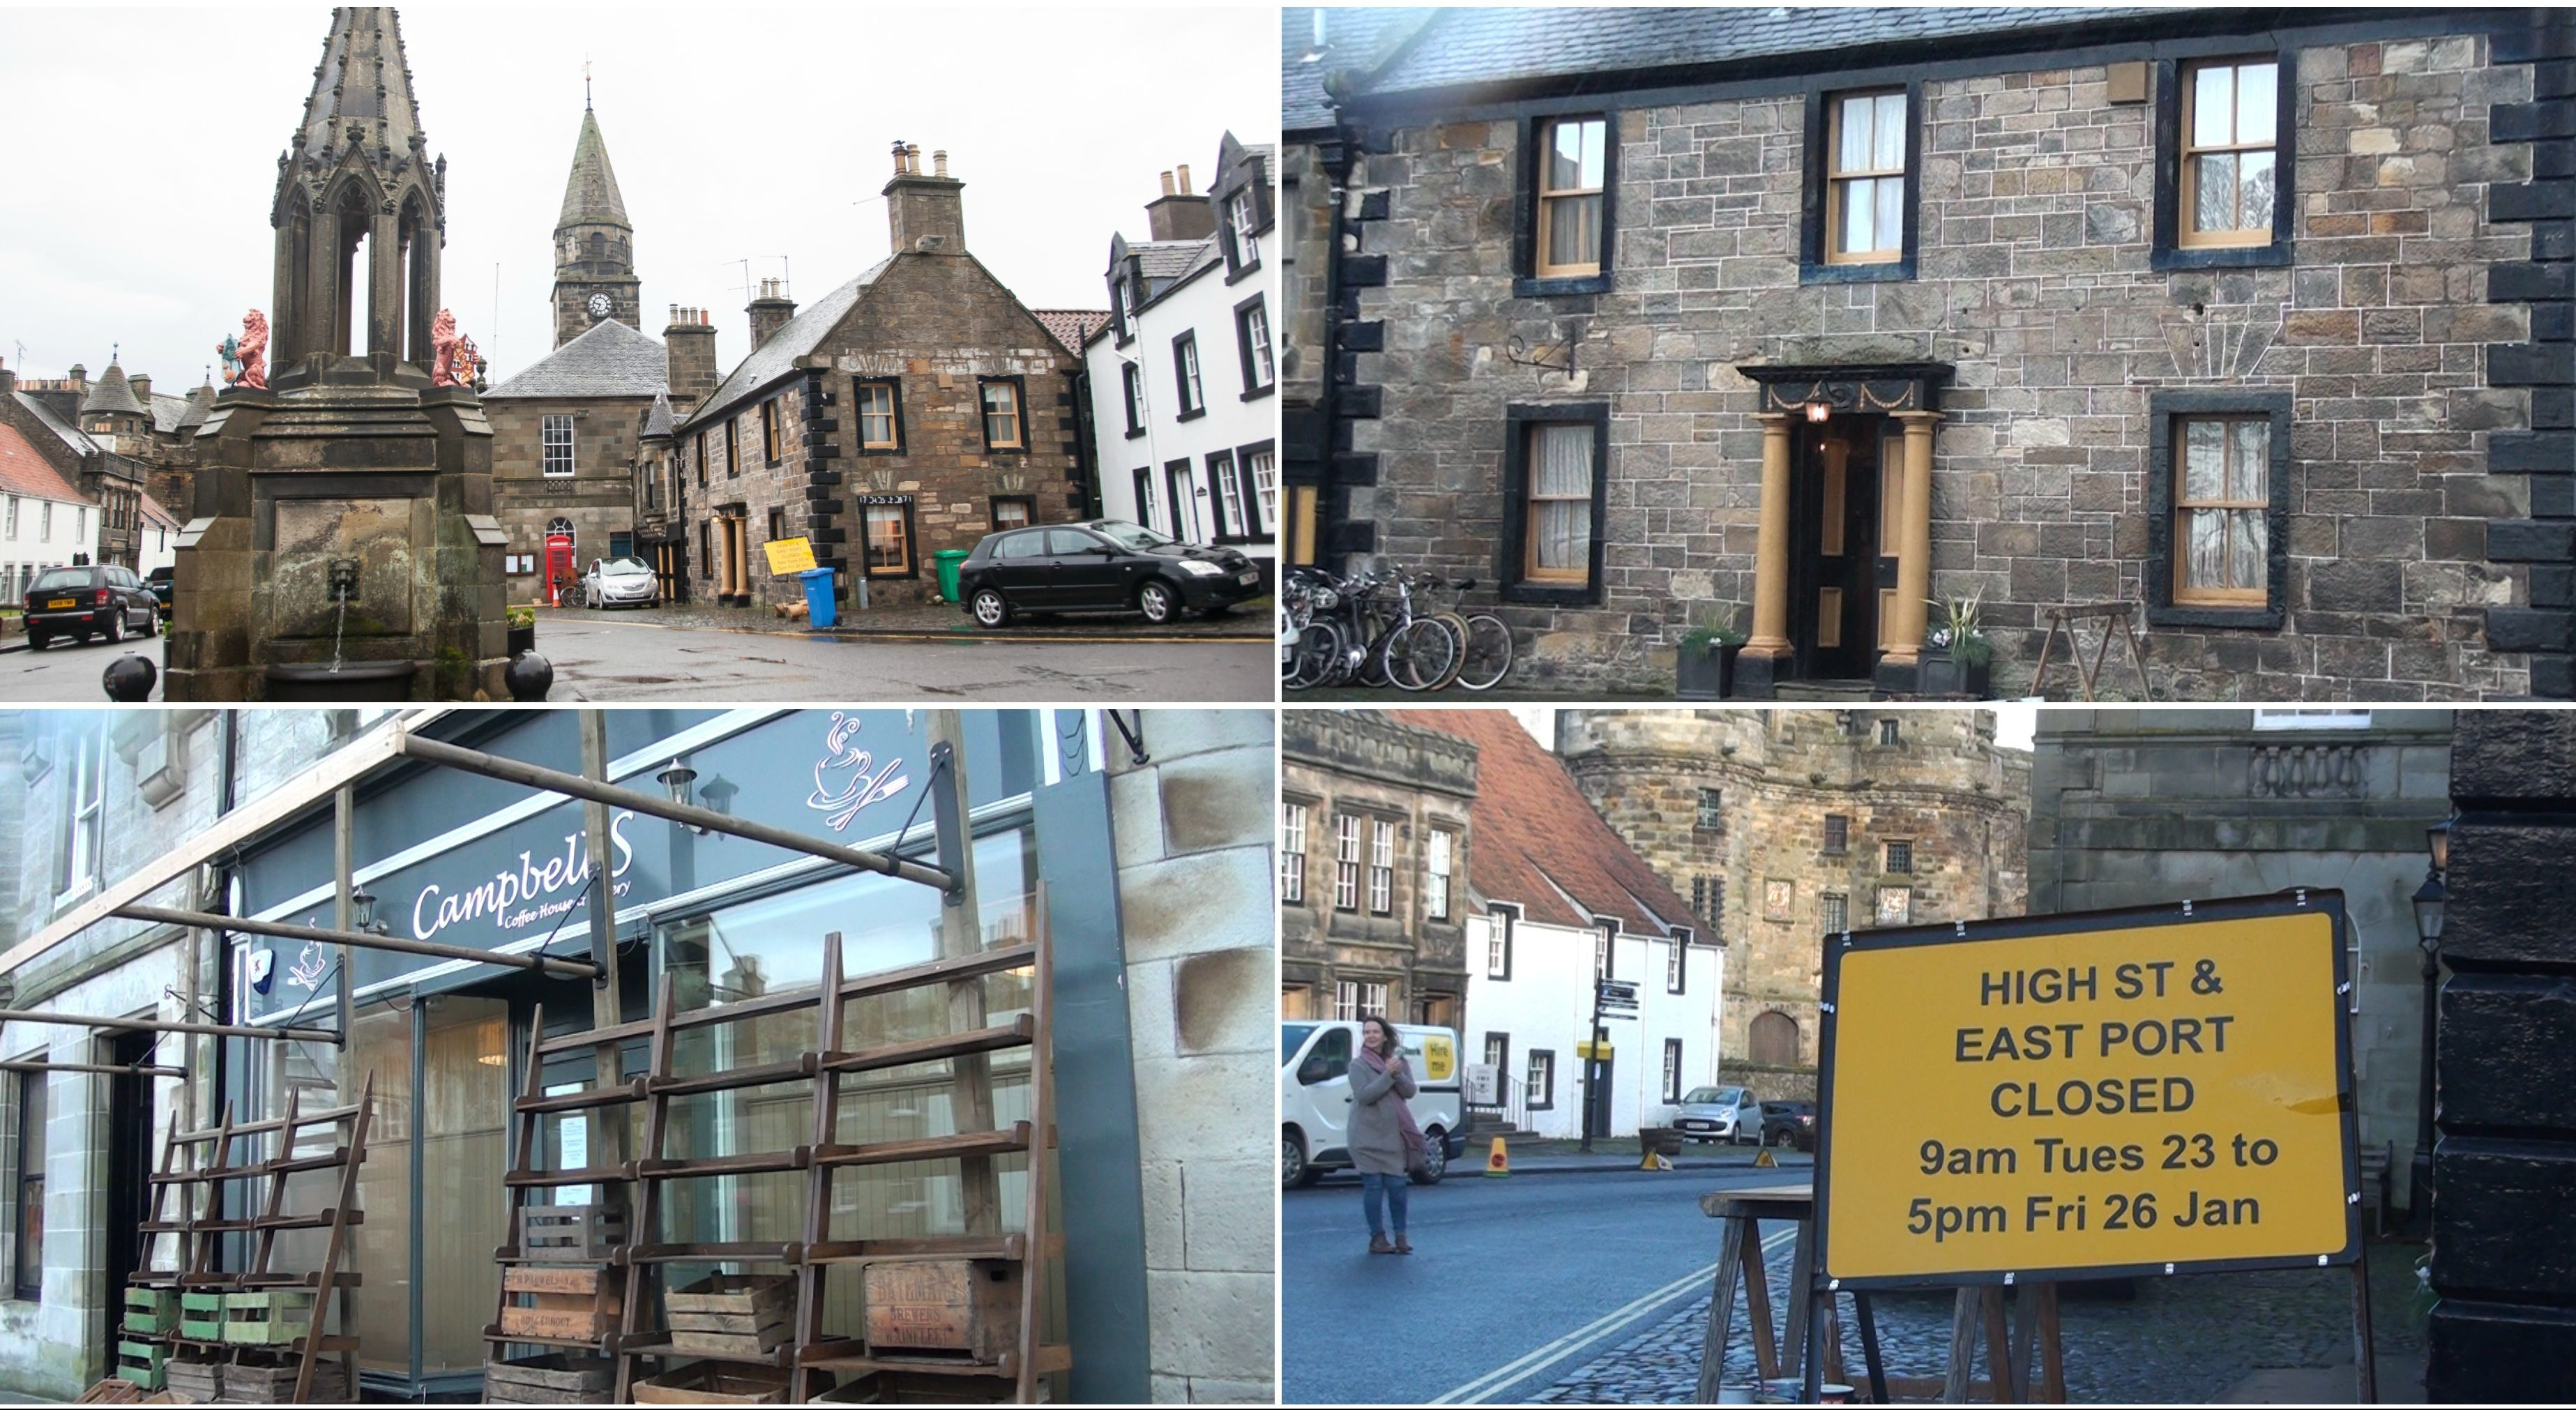 Falkland businesses were transformed as the village welcomes Outlander's cast and crew.